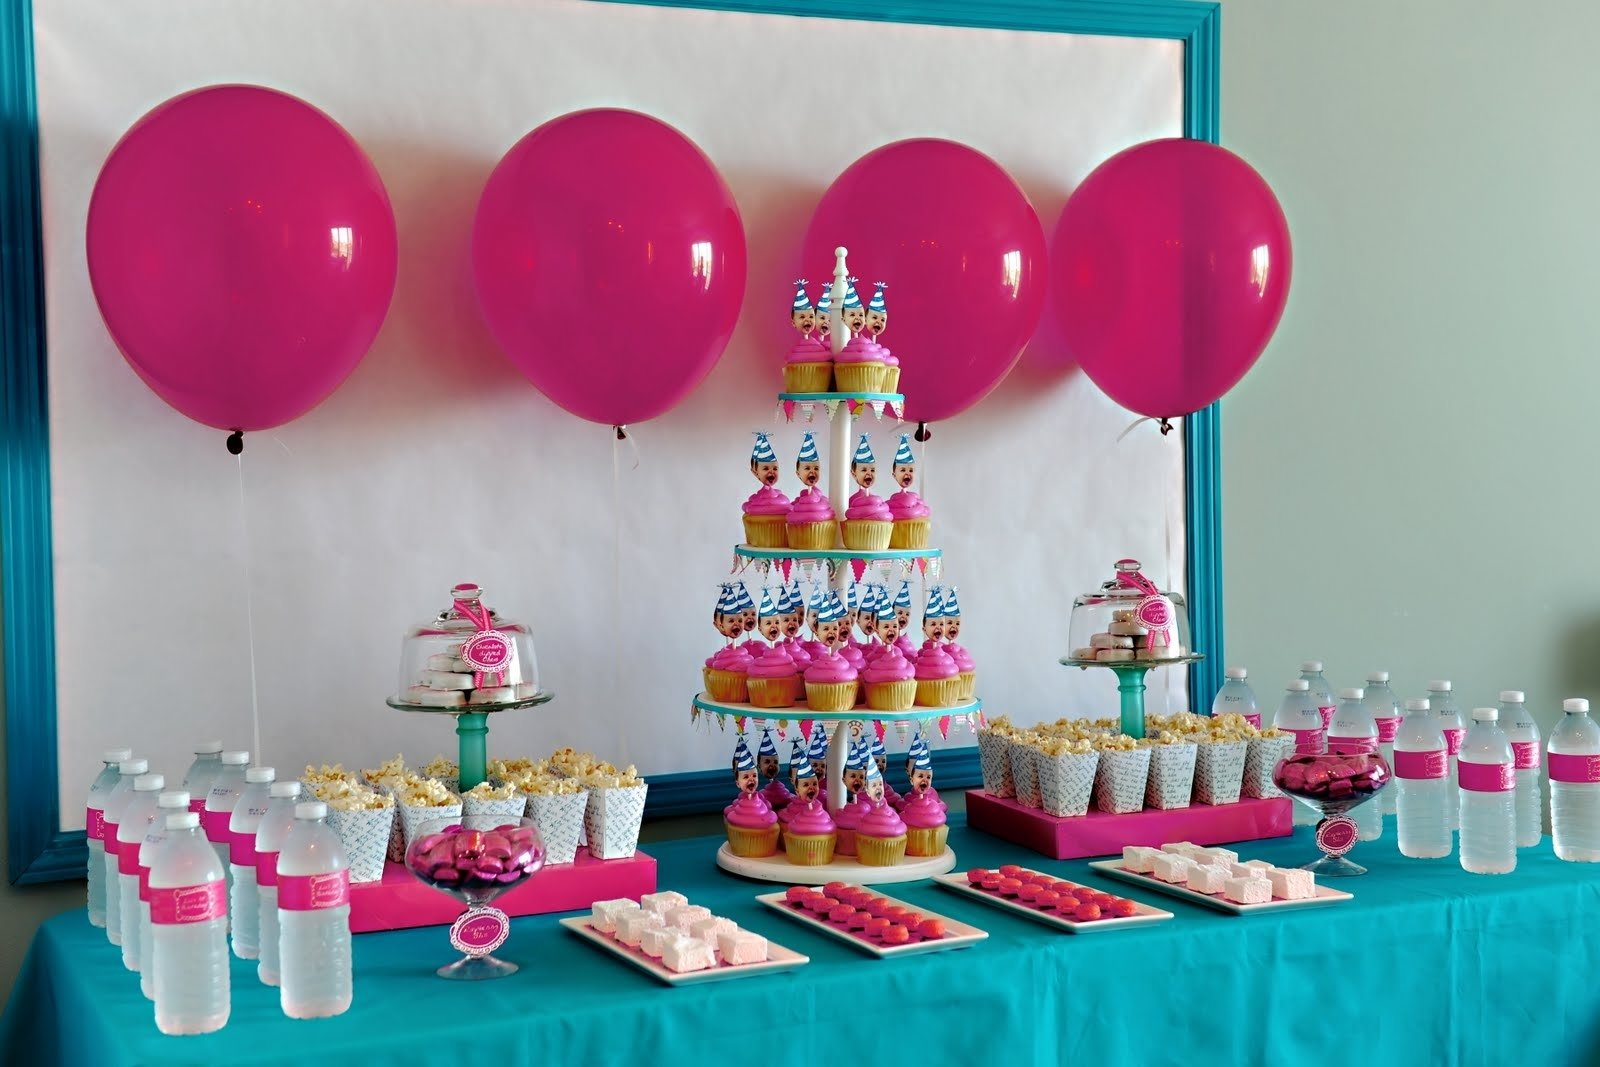 10 Lovable 4 Yr Old Girl Birthday Party Ideas themes birthday 1 year old birthday party ideas with 1 year old 2020